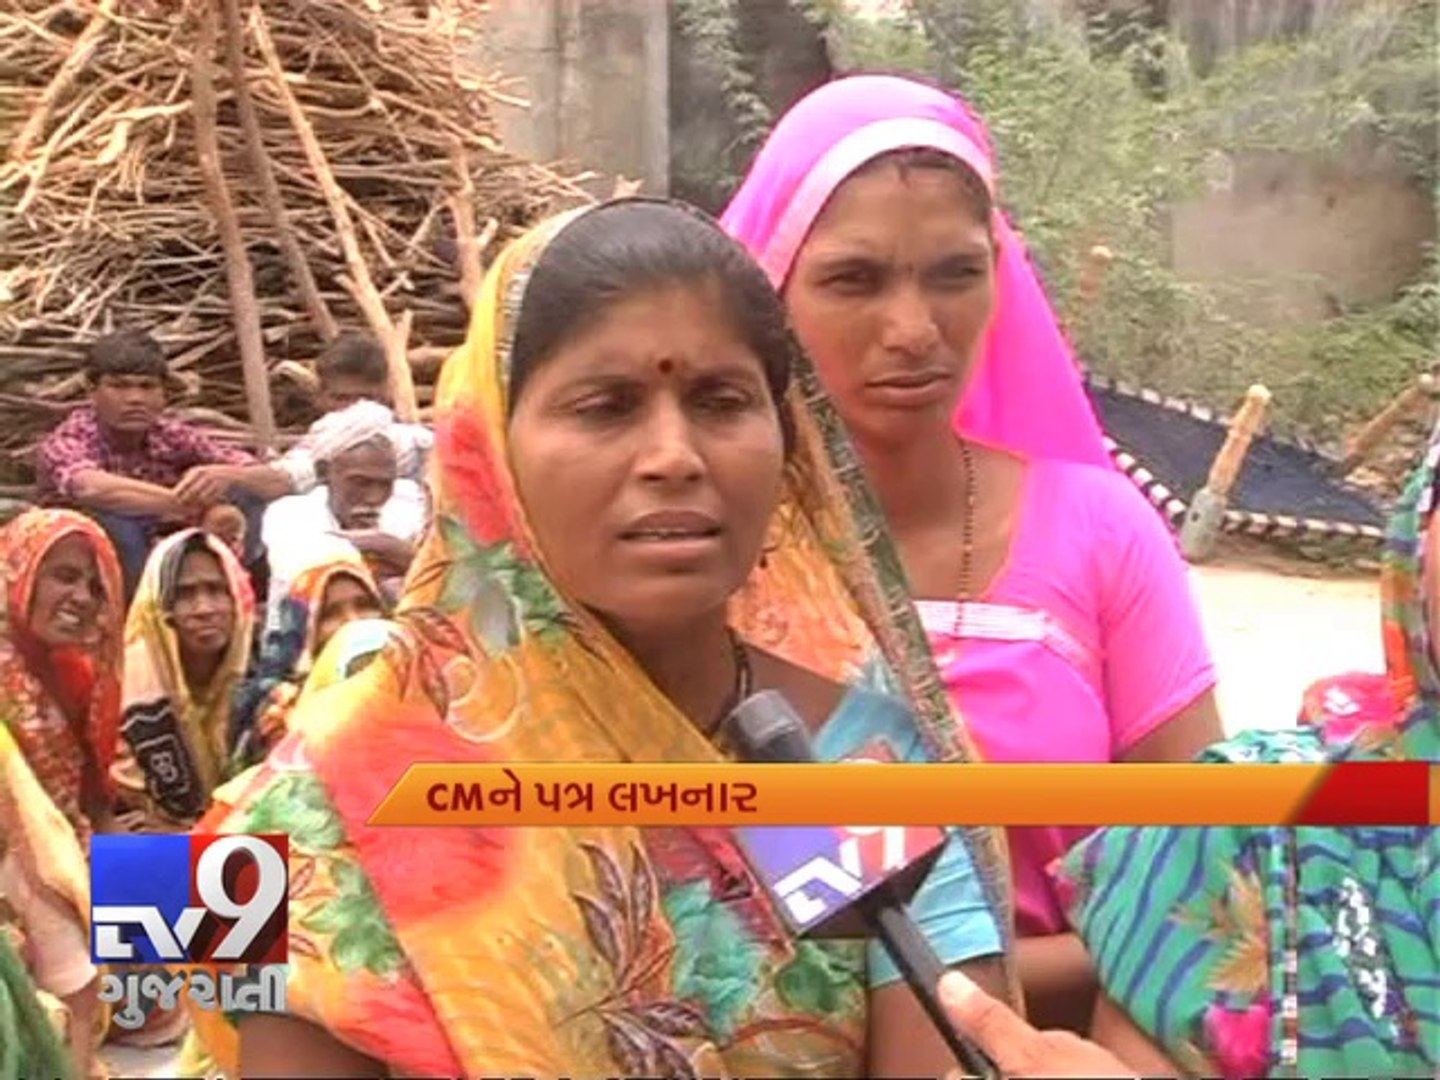 Dalit women not allowed to draw water from tube well, Surendranagar - Tv9 Gujarati